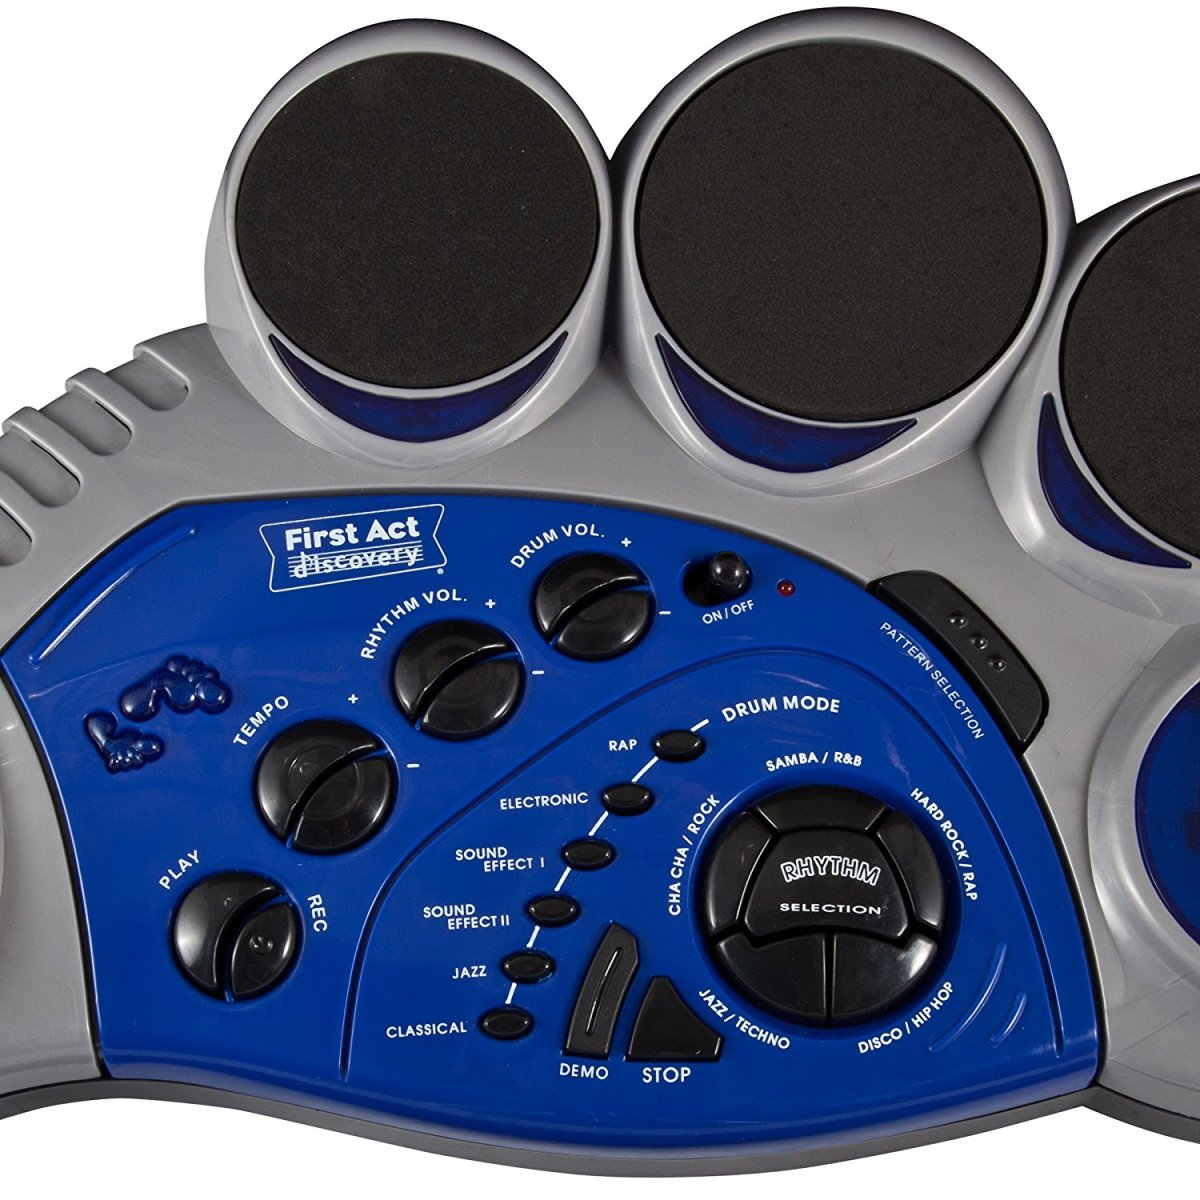 First Act FD213 5-pad electronic drums.